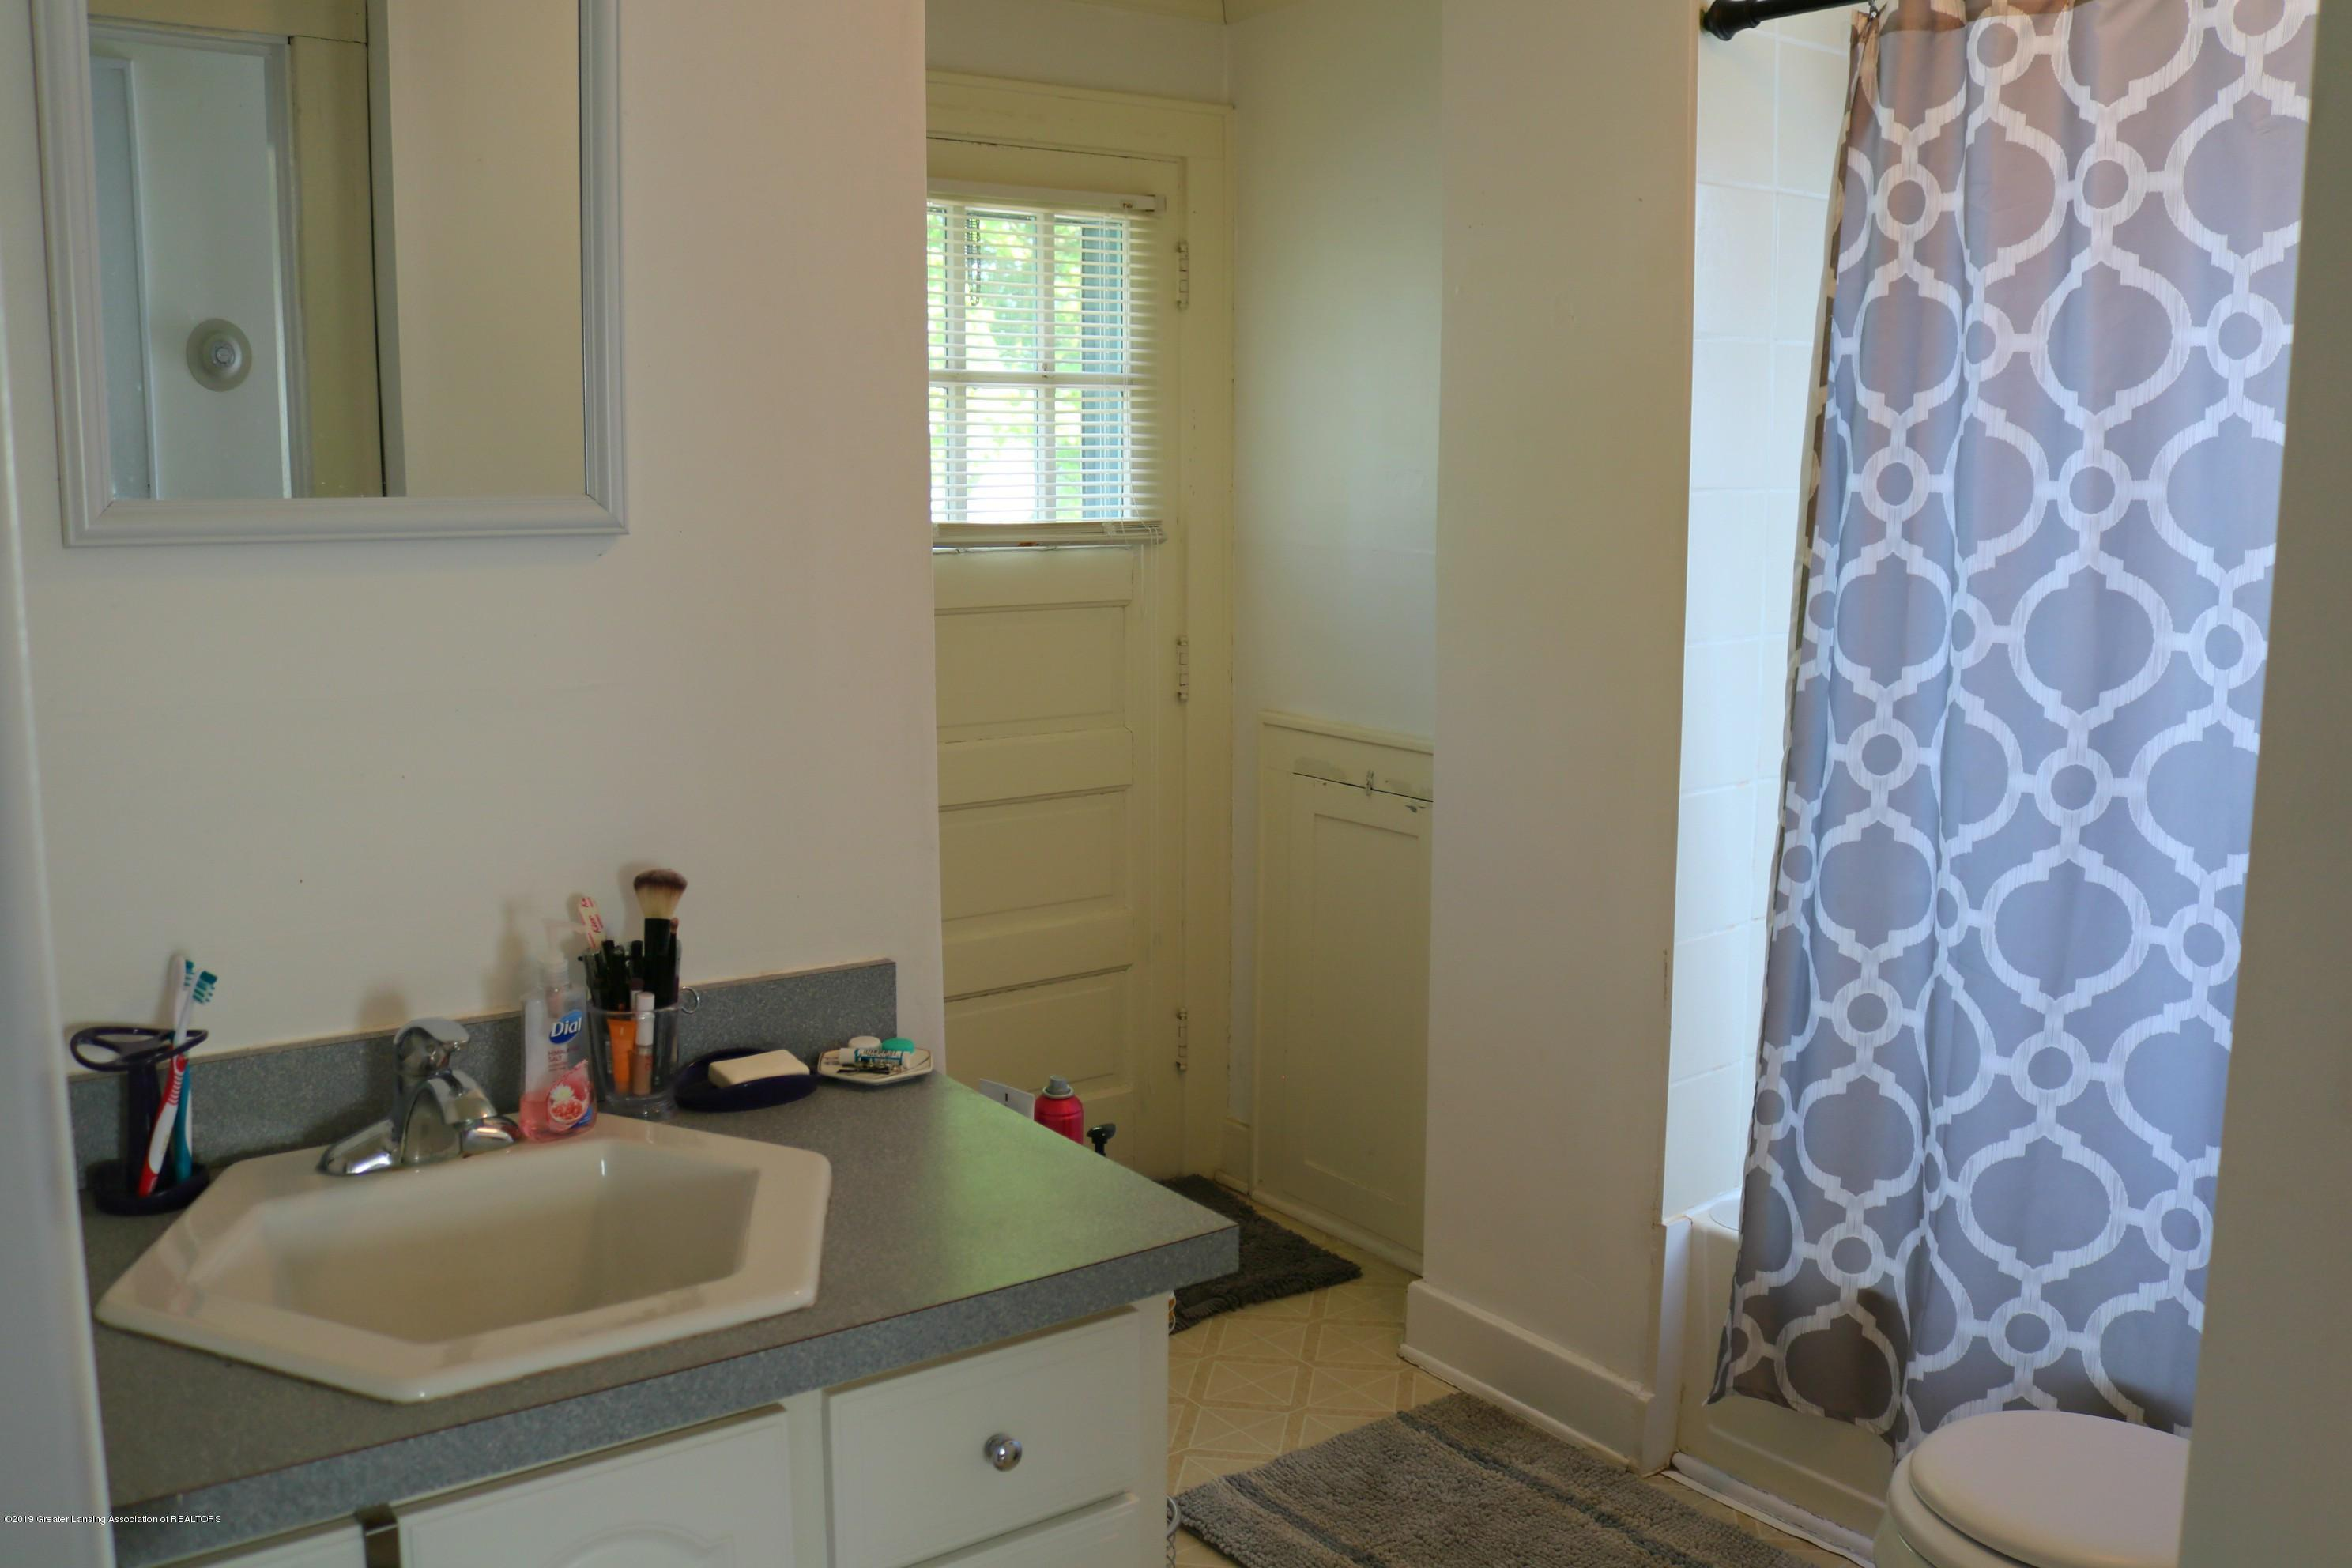 703 N Magnolia Ave - Bathroom - 13